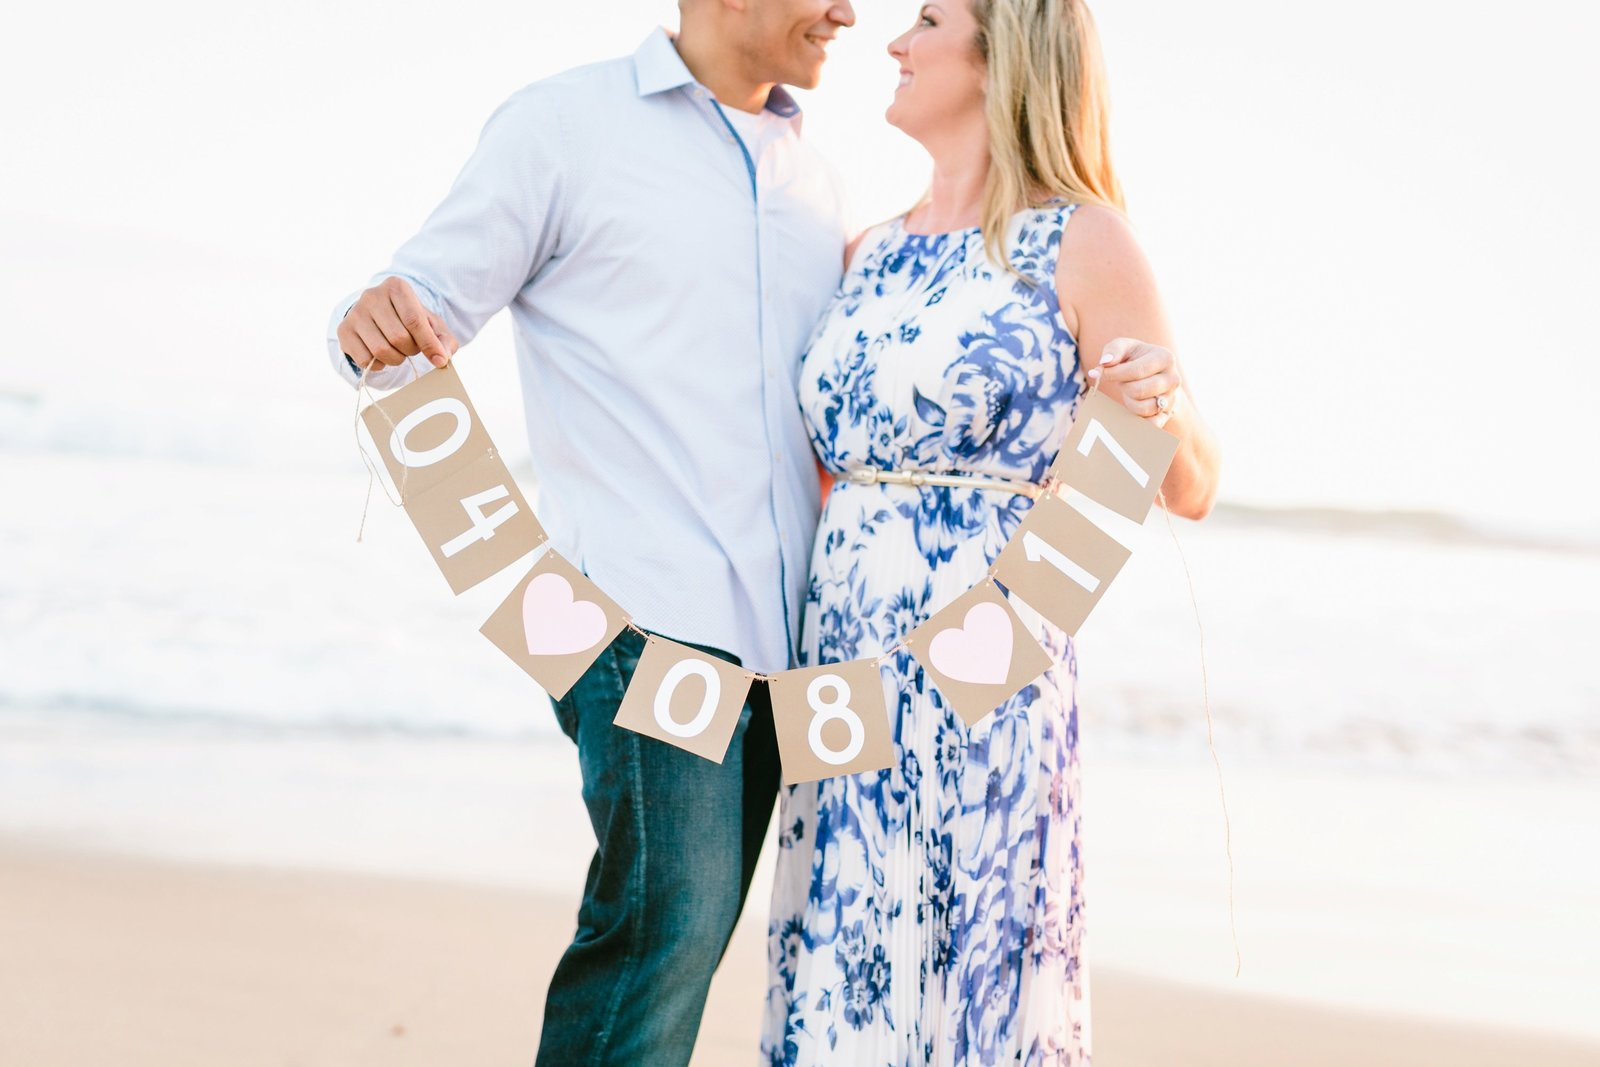 Engagement Photos-Jodee Debes Photography-057